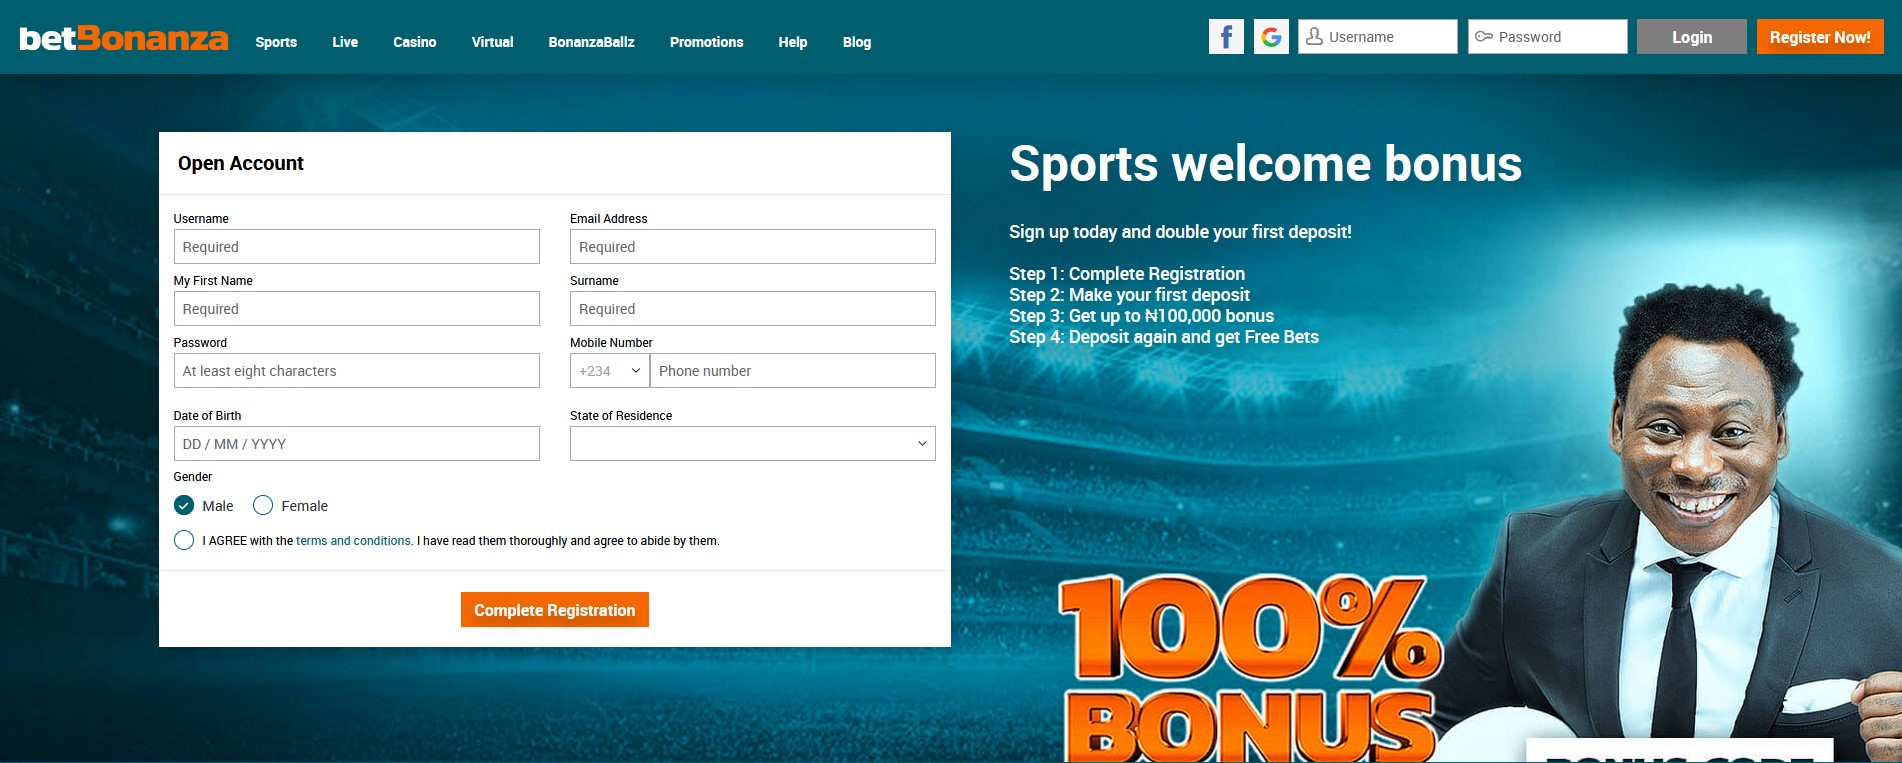 BetBonanza registration